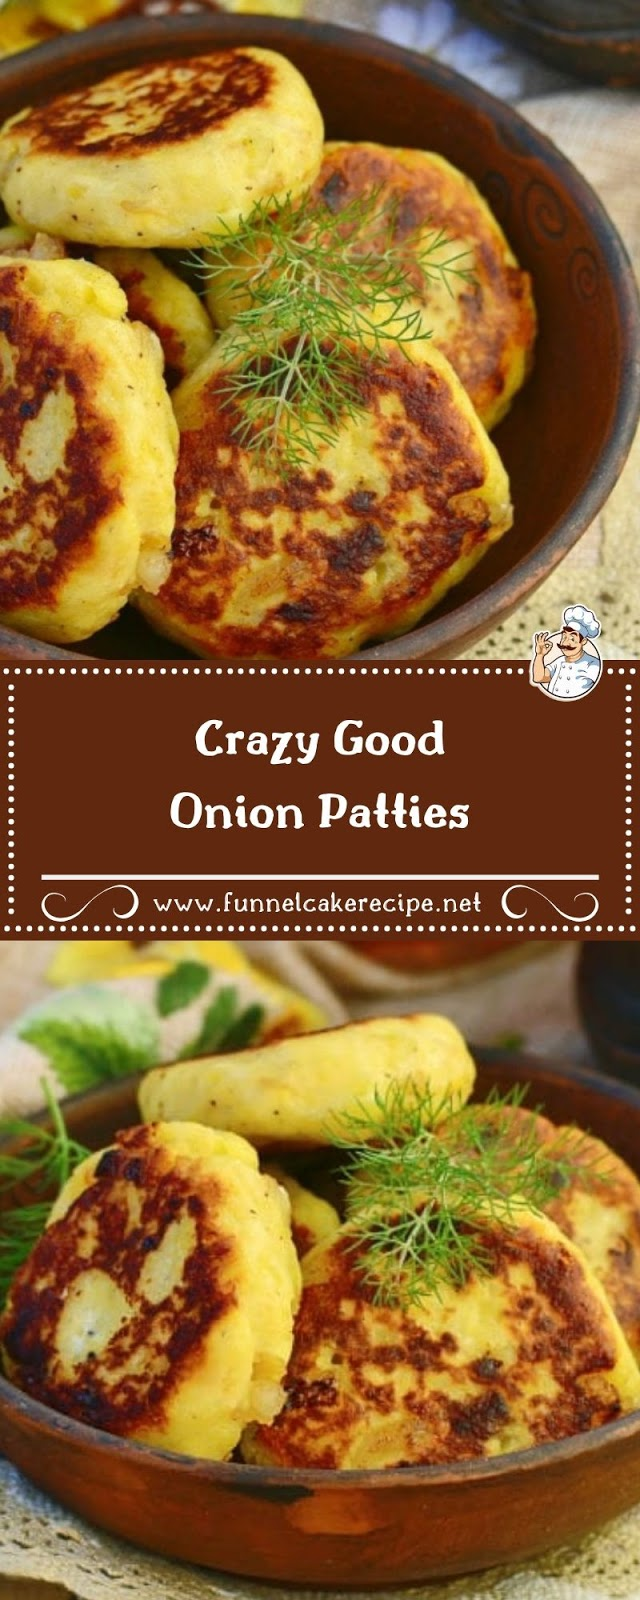 Crazy Good Onion Patties